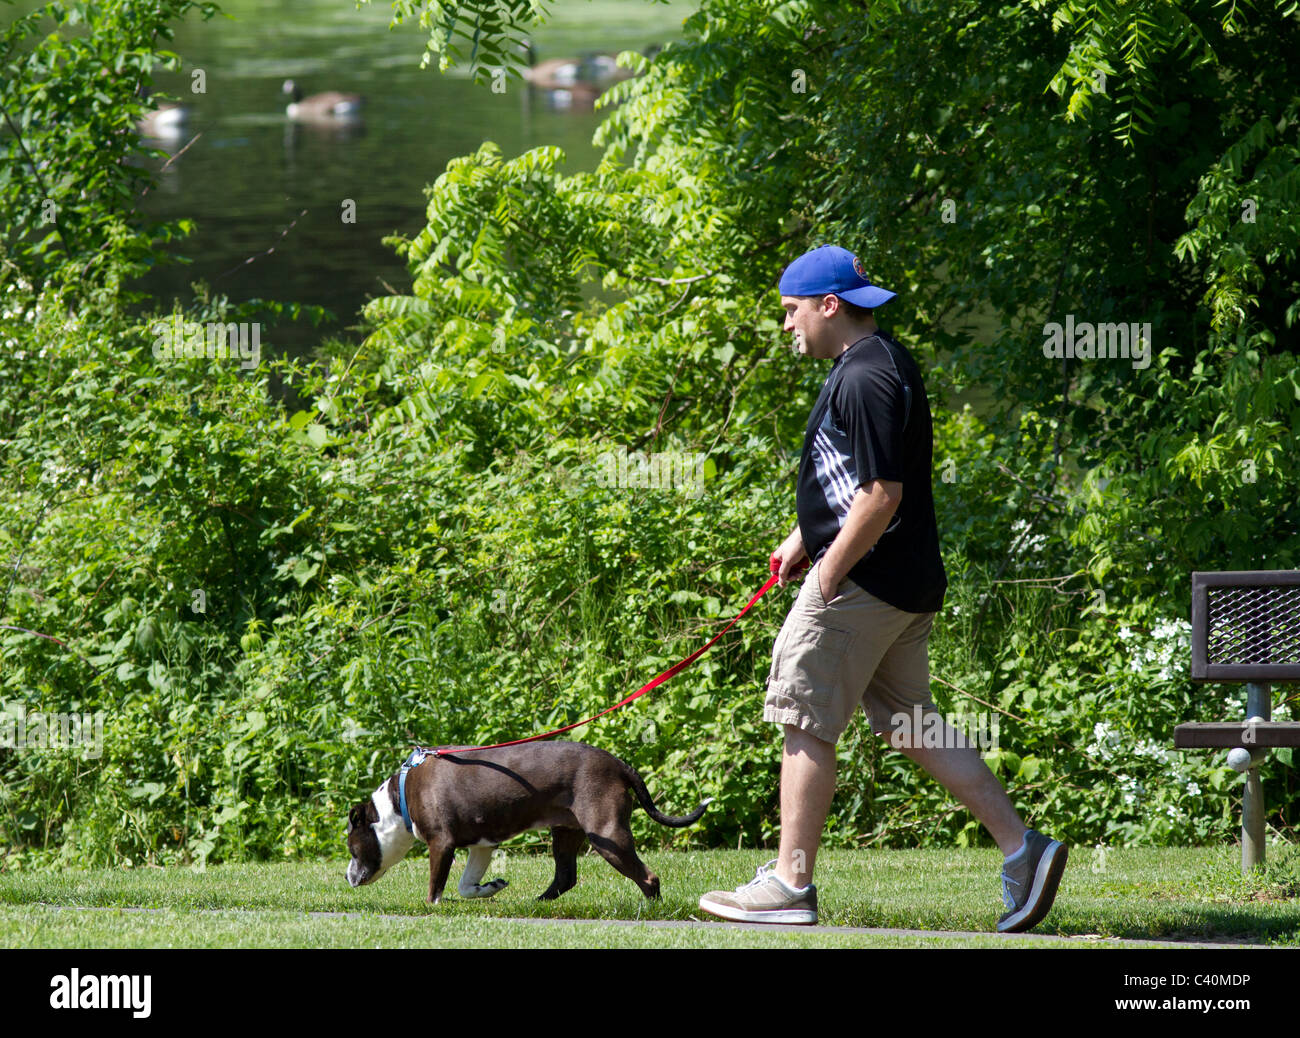 A man walking his dog in the park next to a pond. - Stock Image